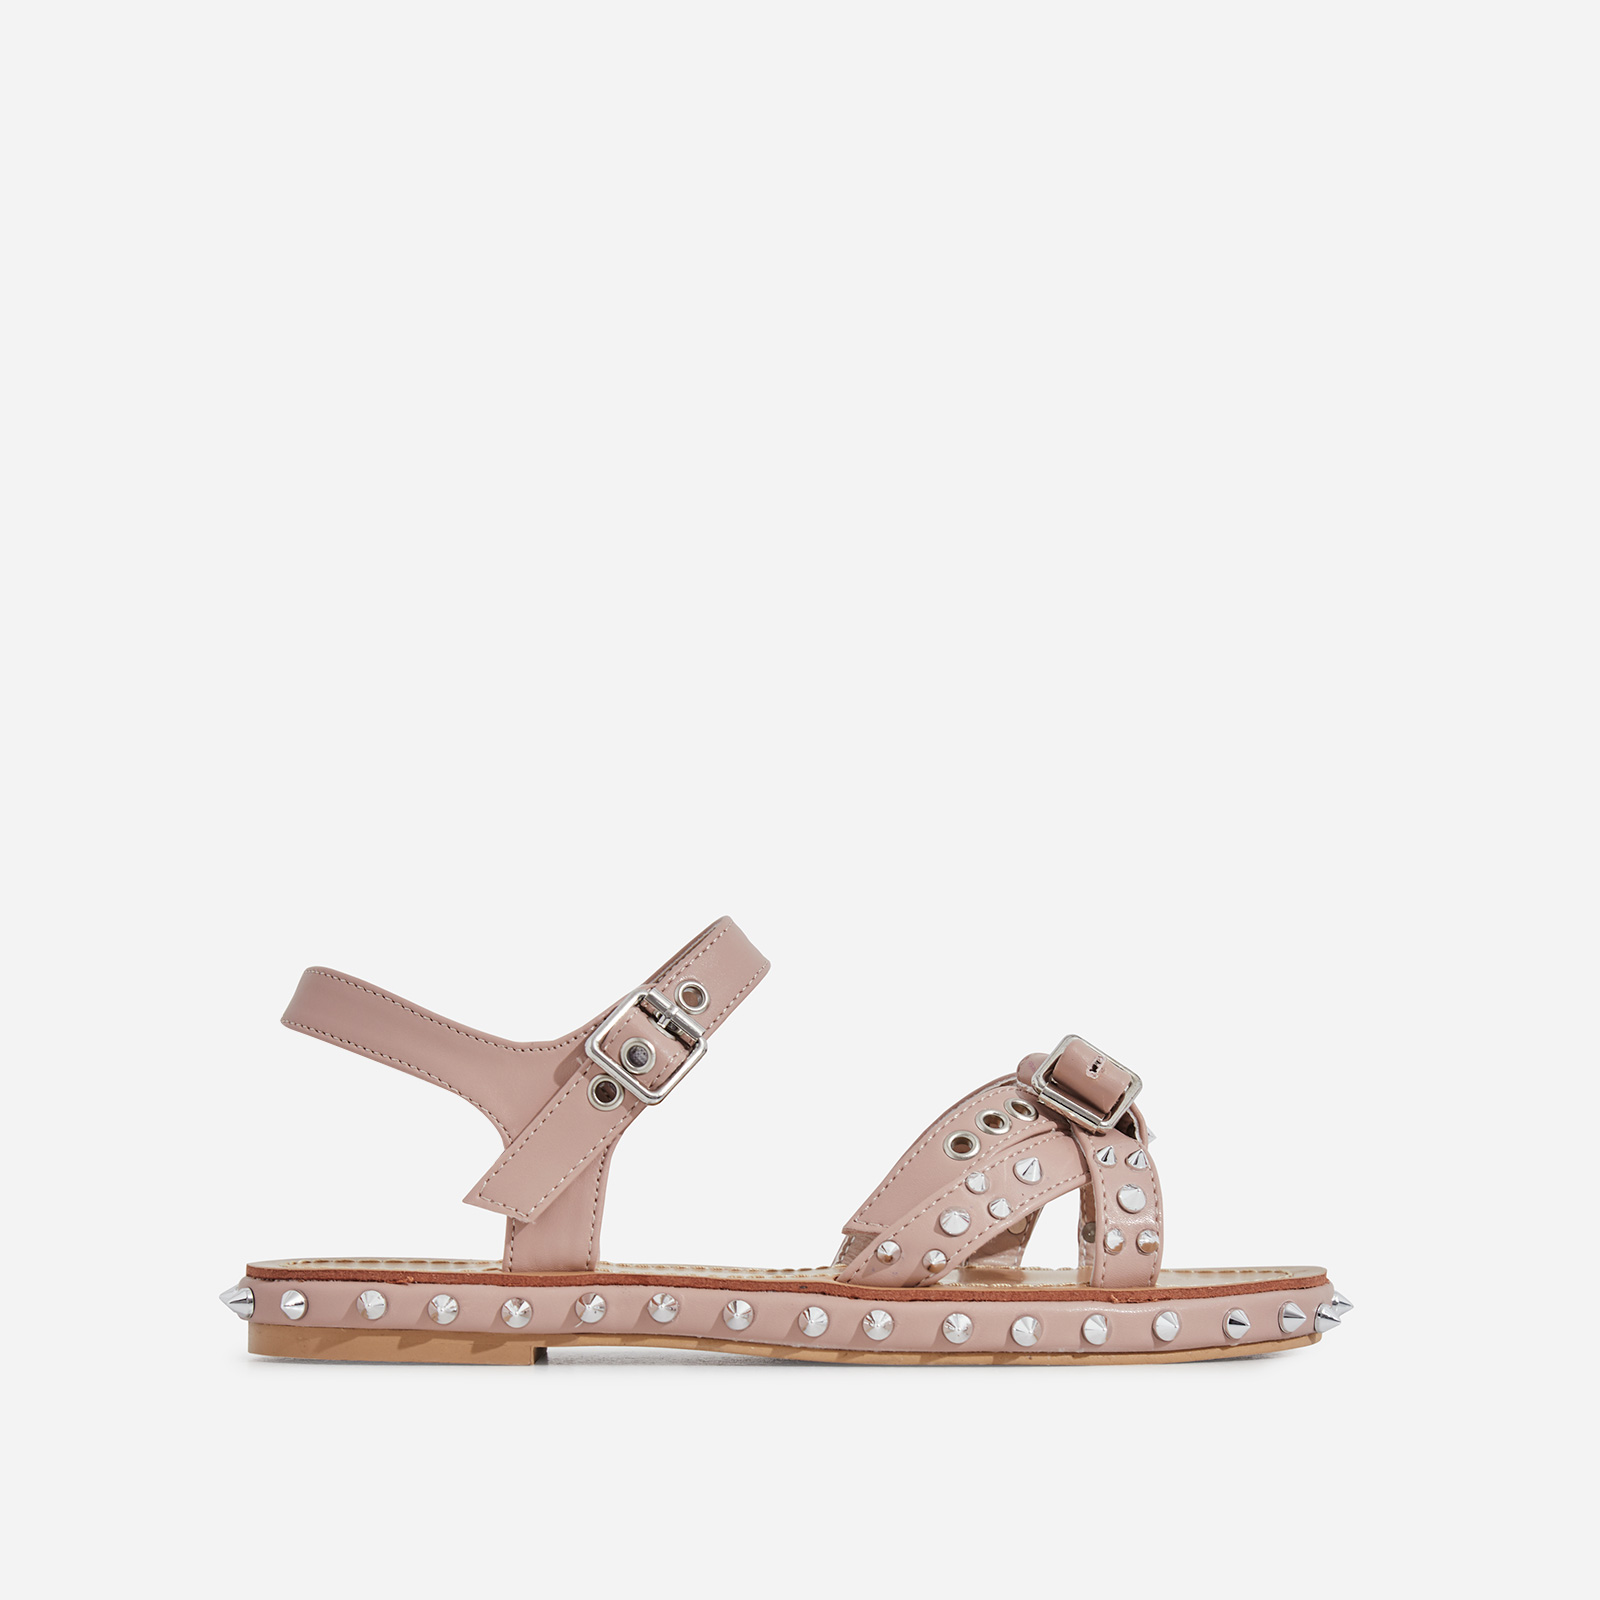 Gerry Studded Detail Sandal In Nude Faux Leather